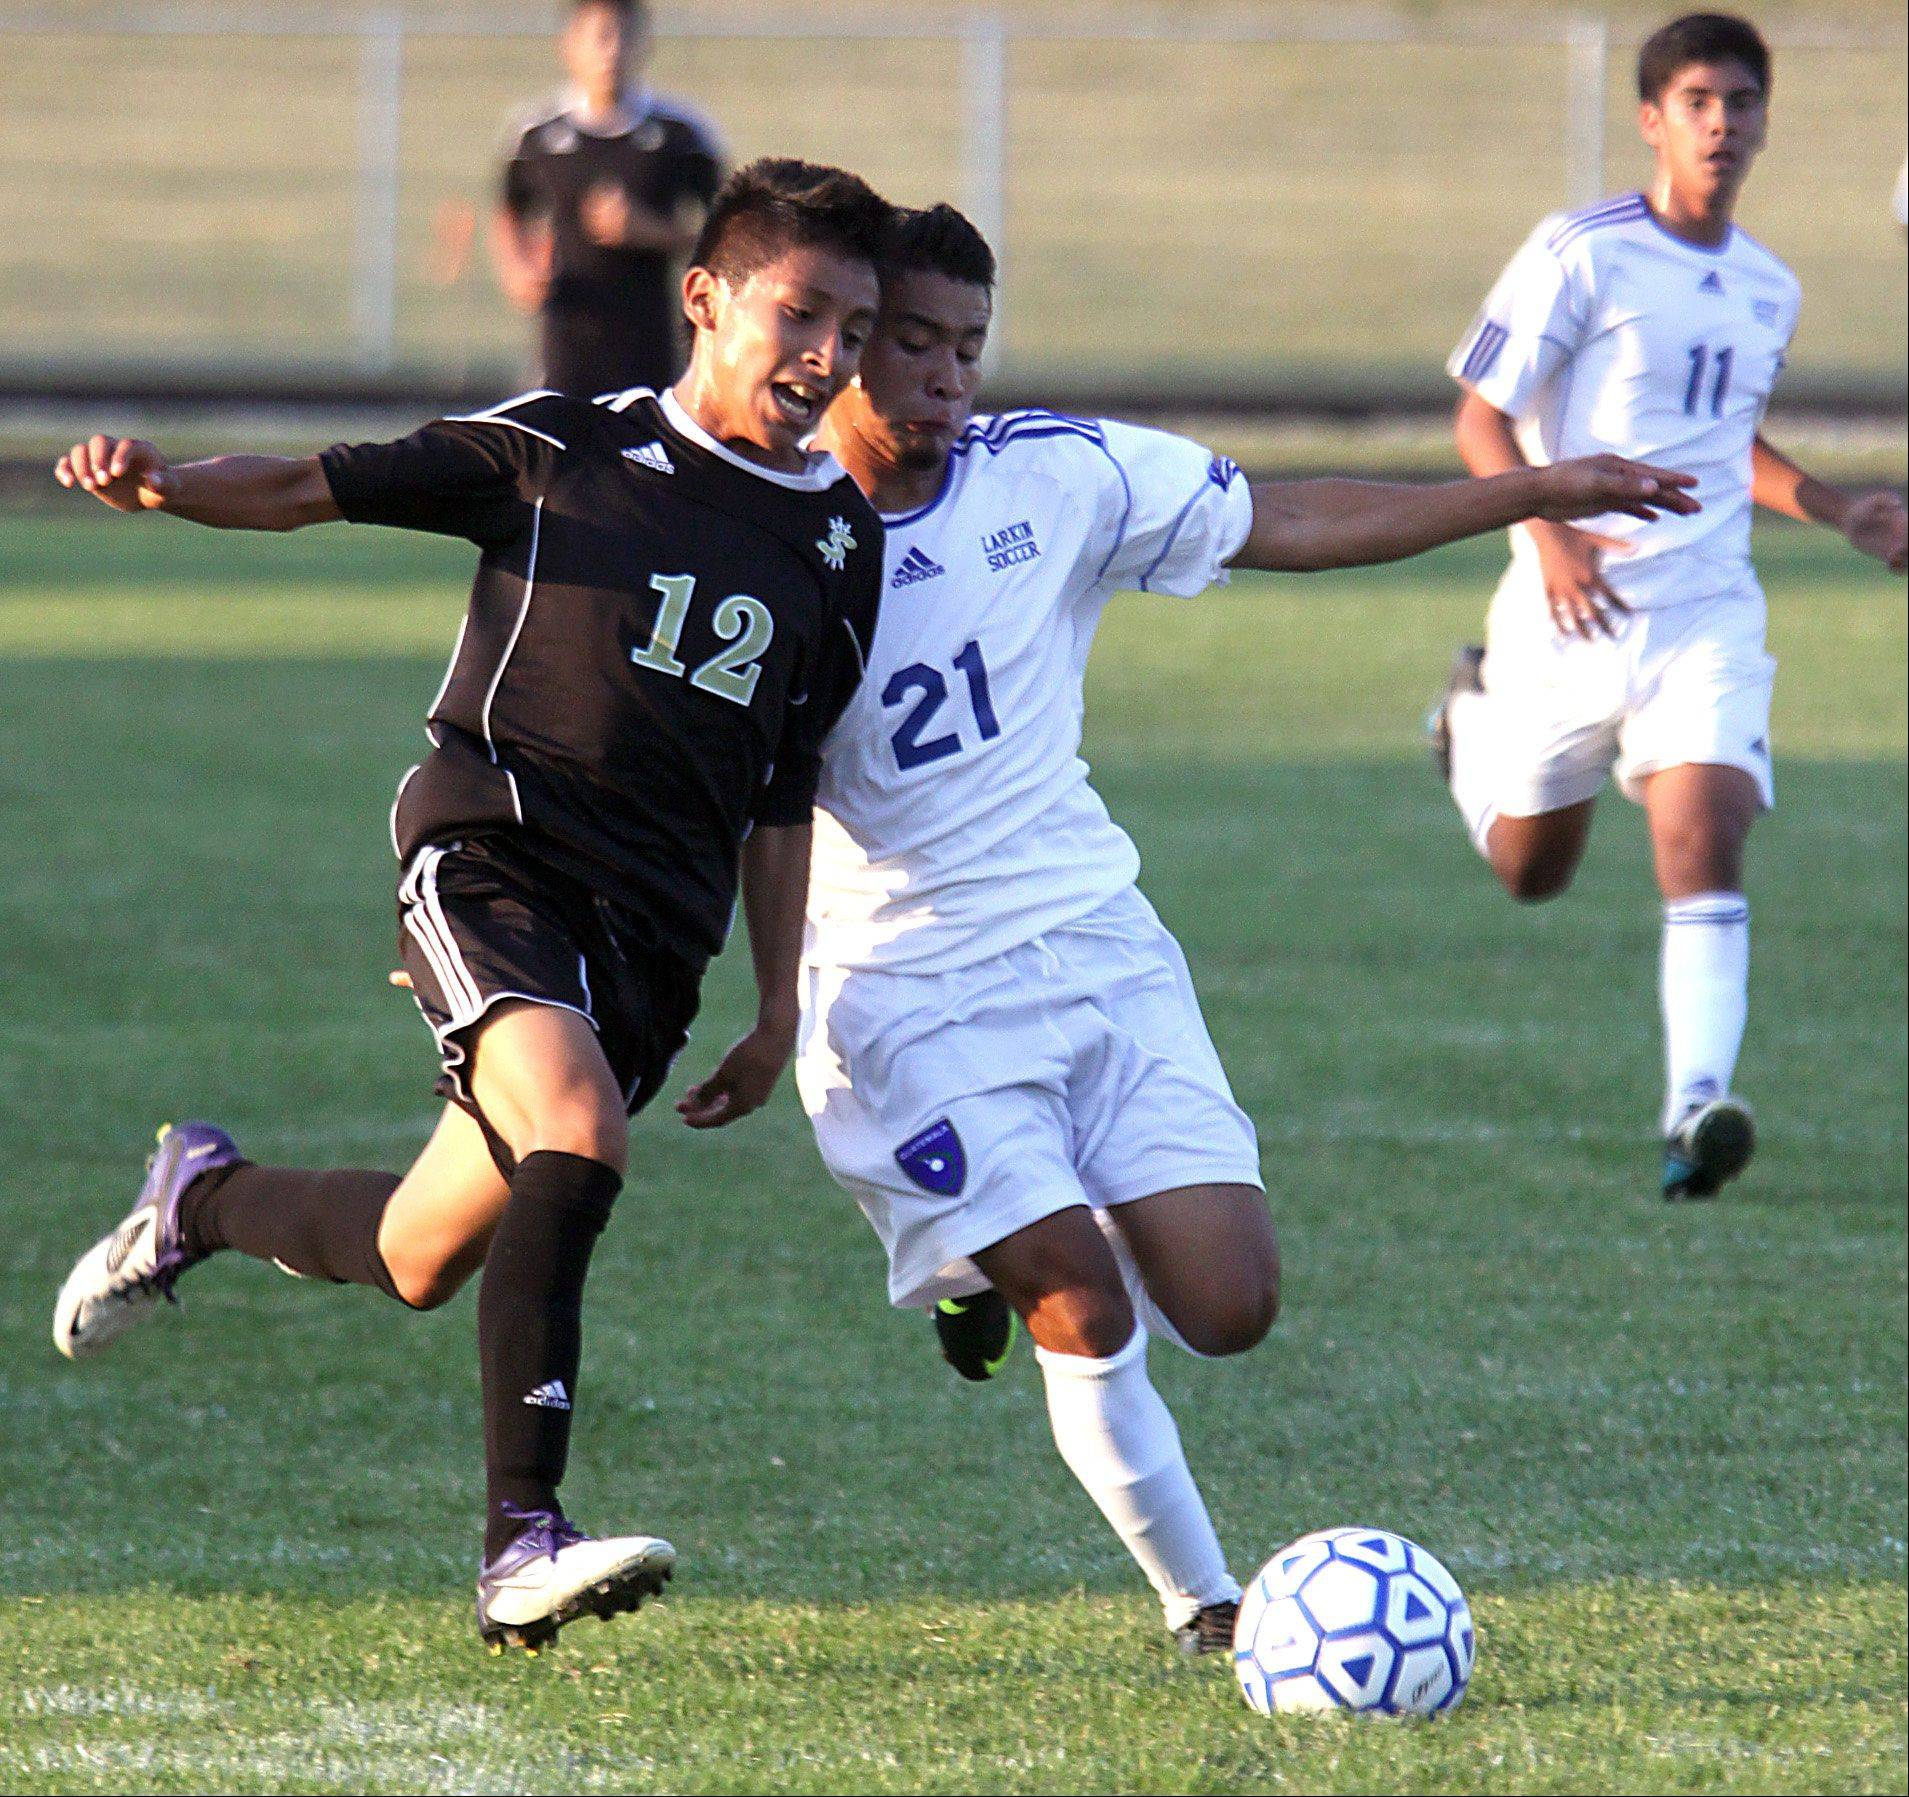 Larkin's Junior Escalante, right, races Streamwood's Edwin Rueda, left, to the ball during a varsity soccer game at Memorial Field in Elgin on Thursday night.